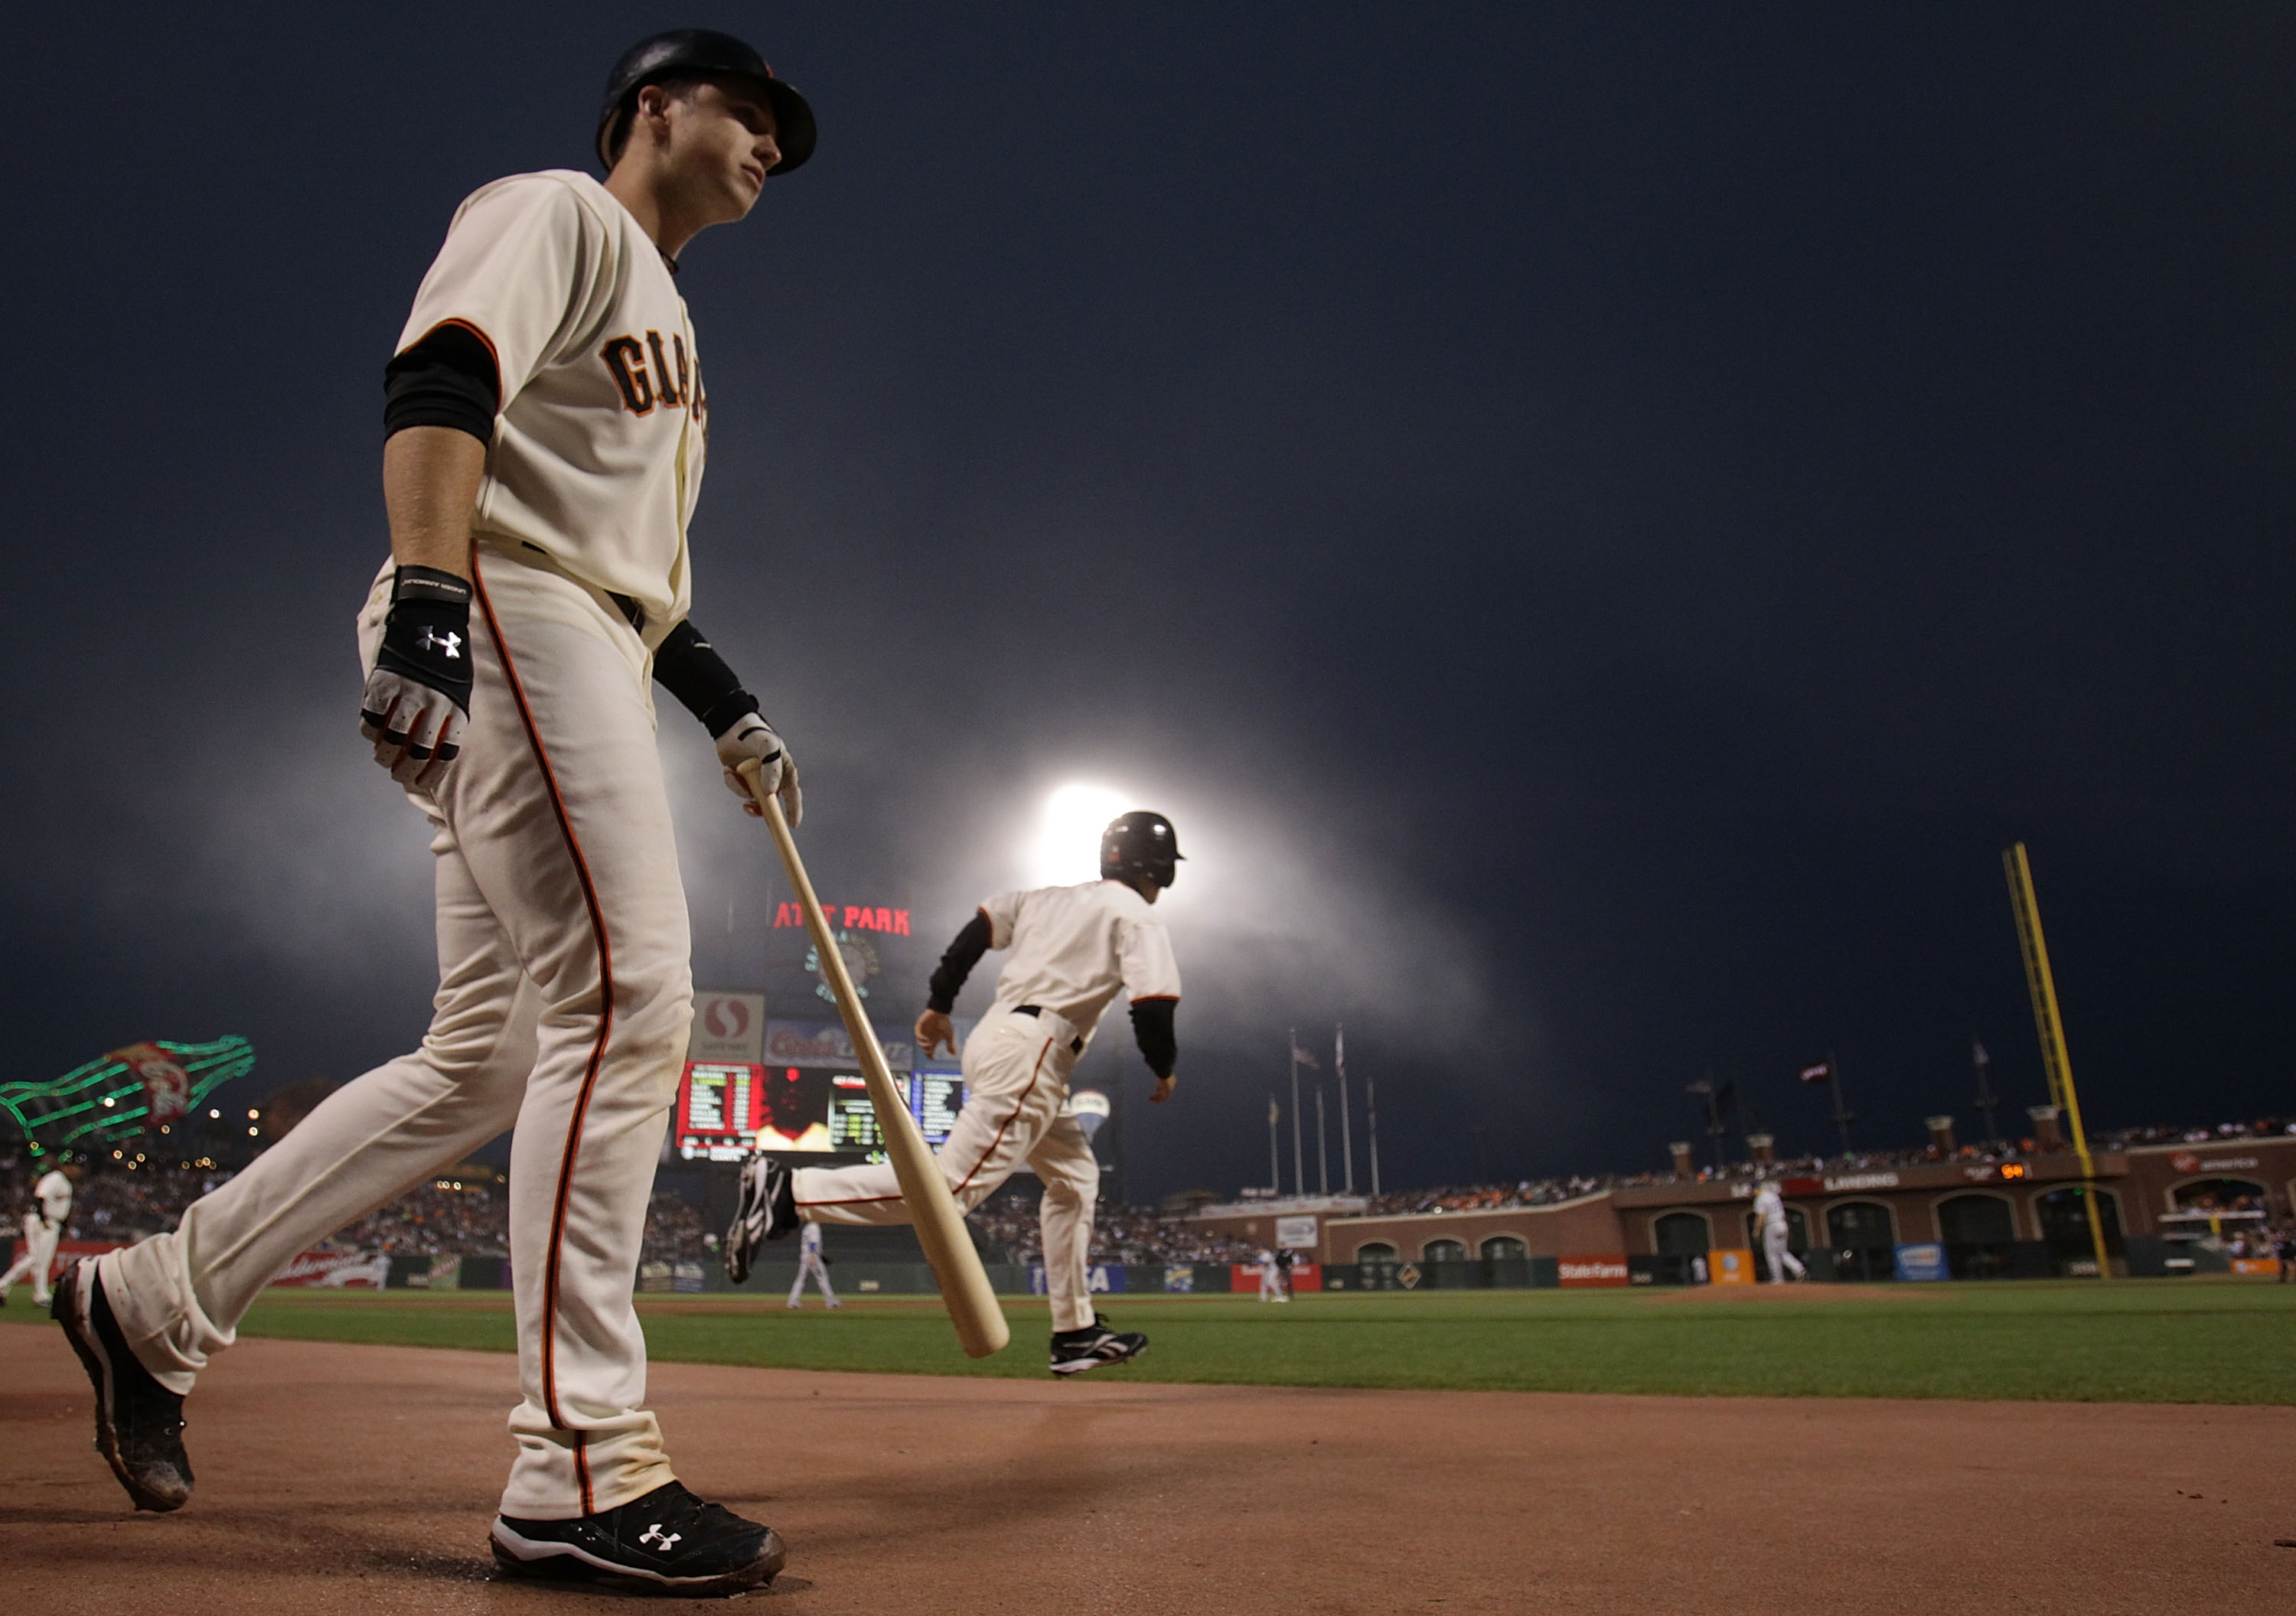 SAN FRANCISCO - SEPTEMBER 16: Buster Posey #28 of the San Francisco Giants walks to the plate against the Los Angeles Dodgers during a Major League Baseball game at AT&T Park on September 16, 2010 in San Francisco, California. (Photo by Jed Jacobsohn/Gett